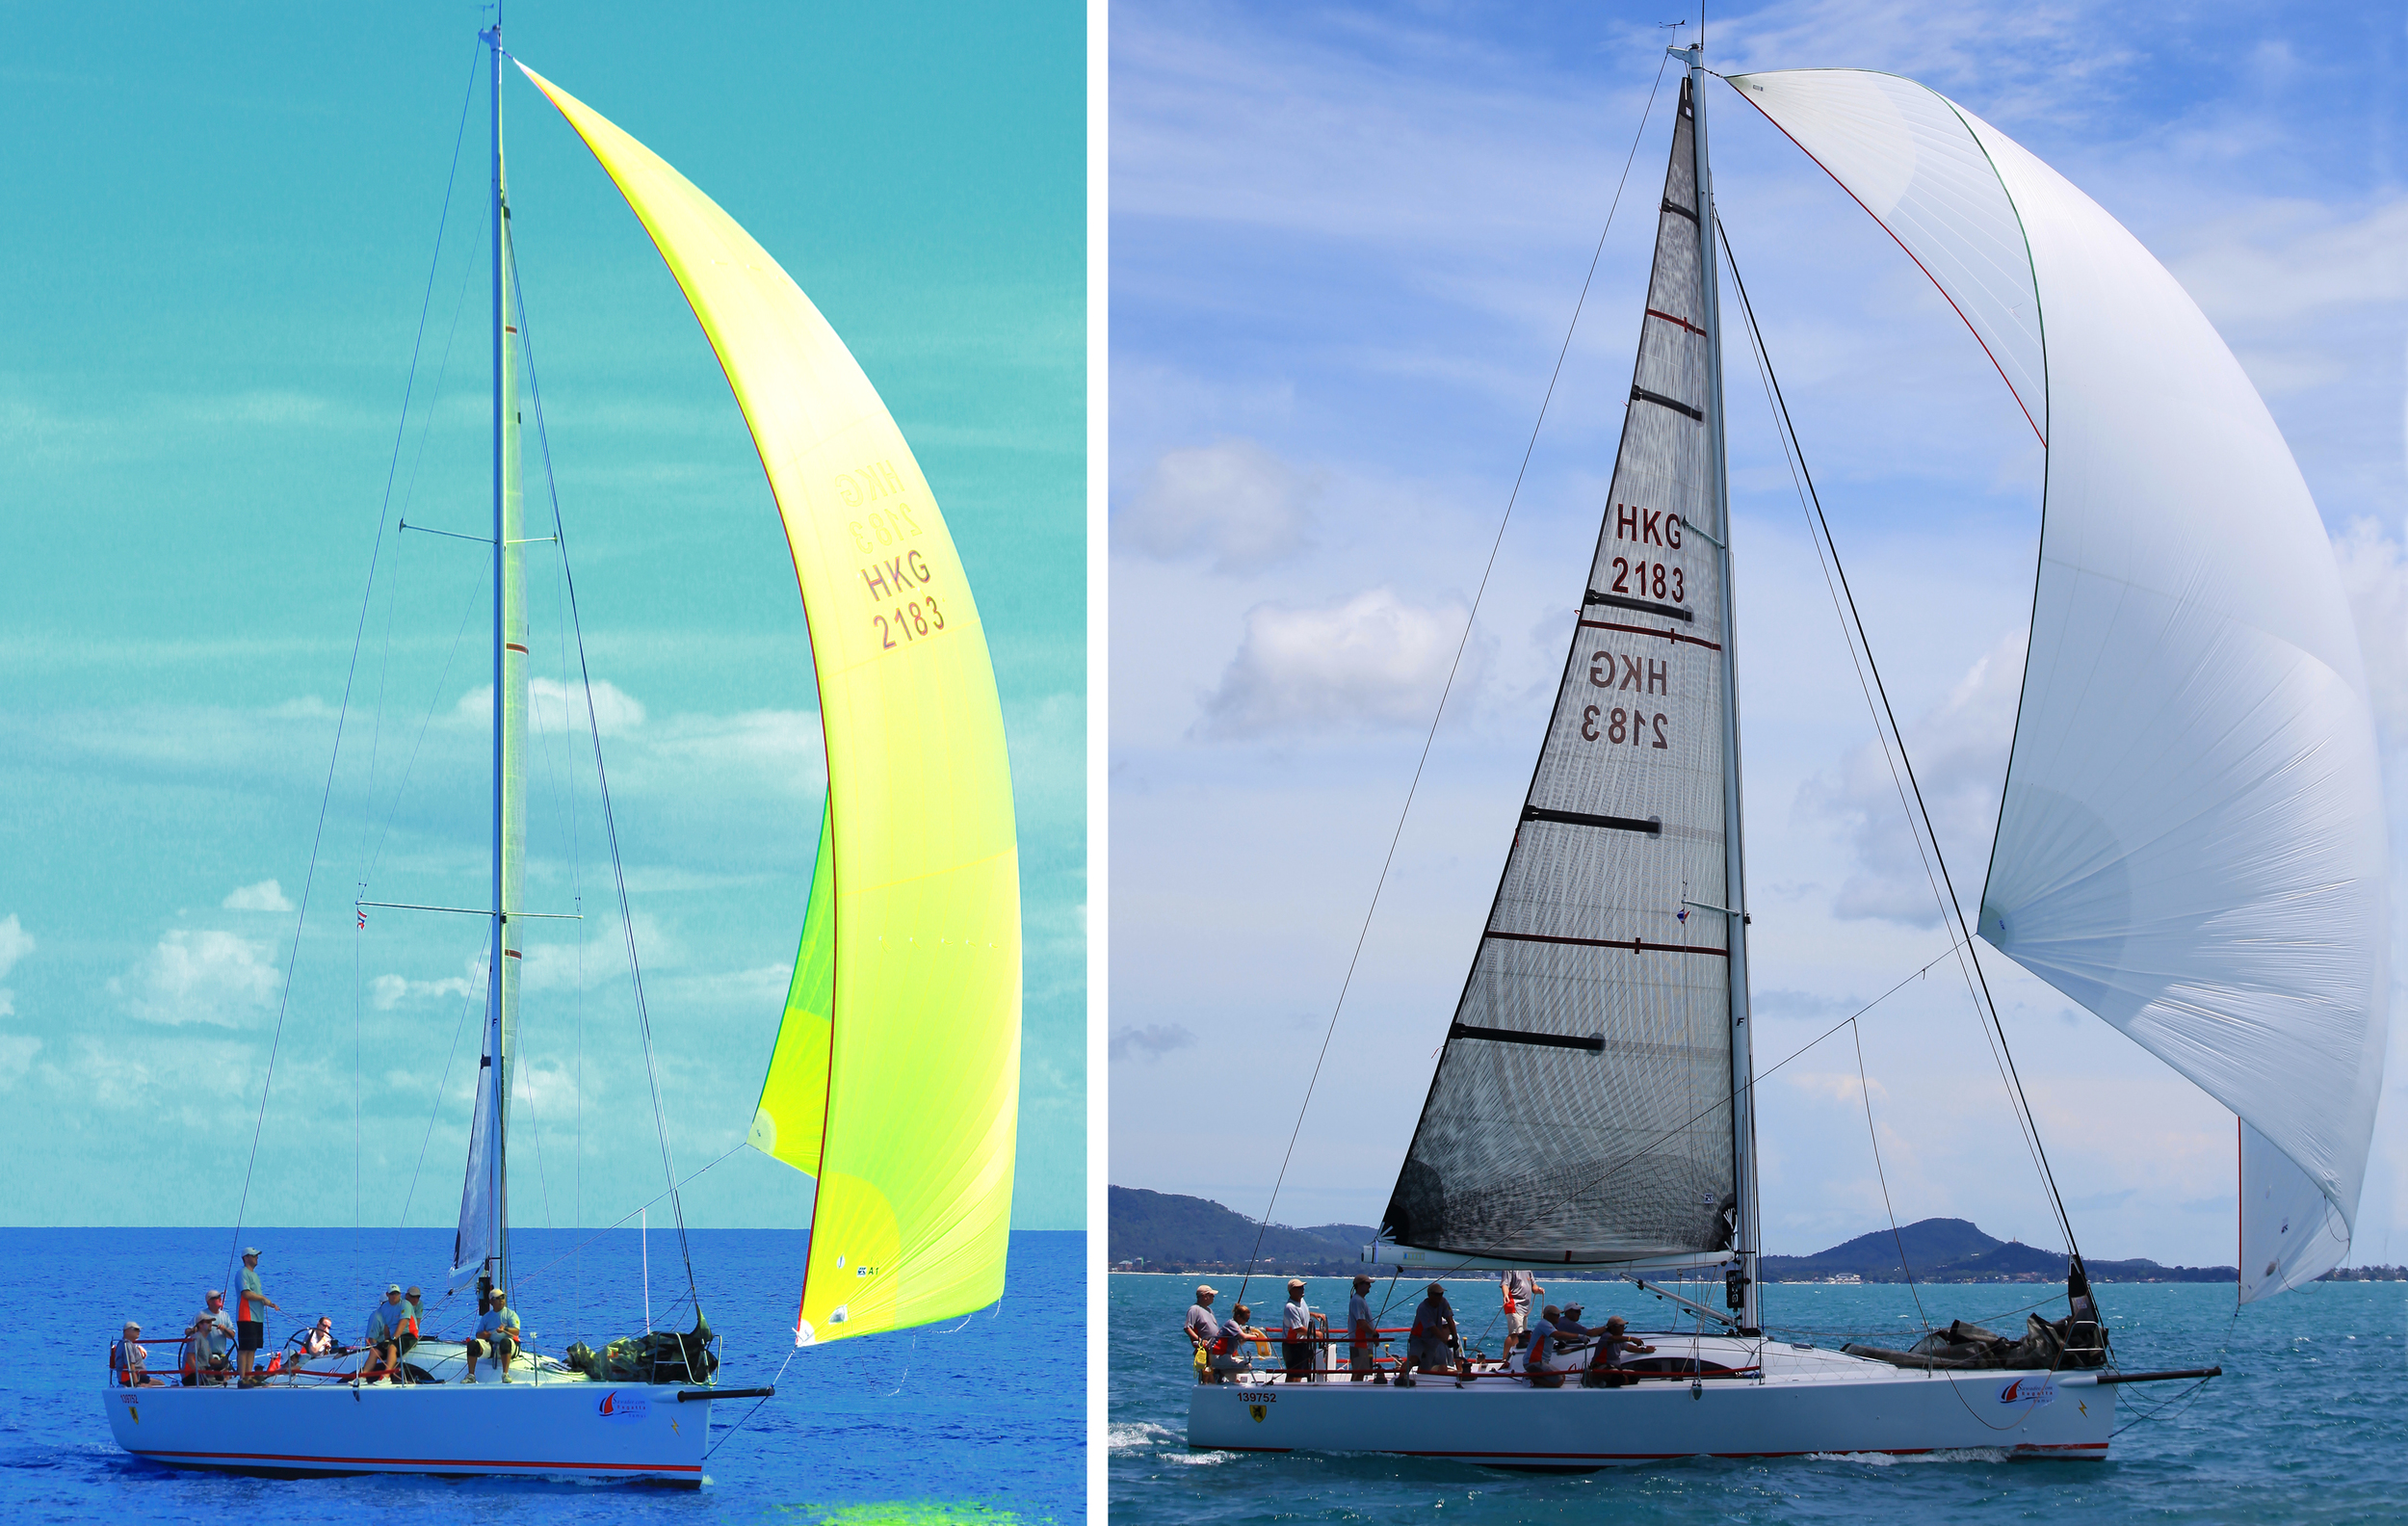 Two different spinnakers on the Archambault 40 RC ELEKTRA. On the left is the boat's A1, which is flatter and smaller than the A2 shown on the right.